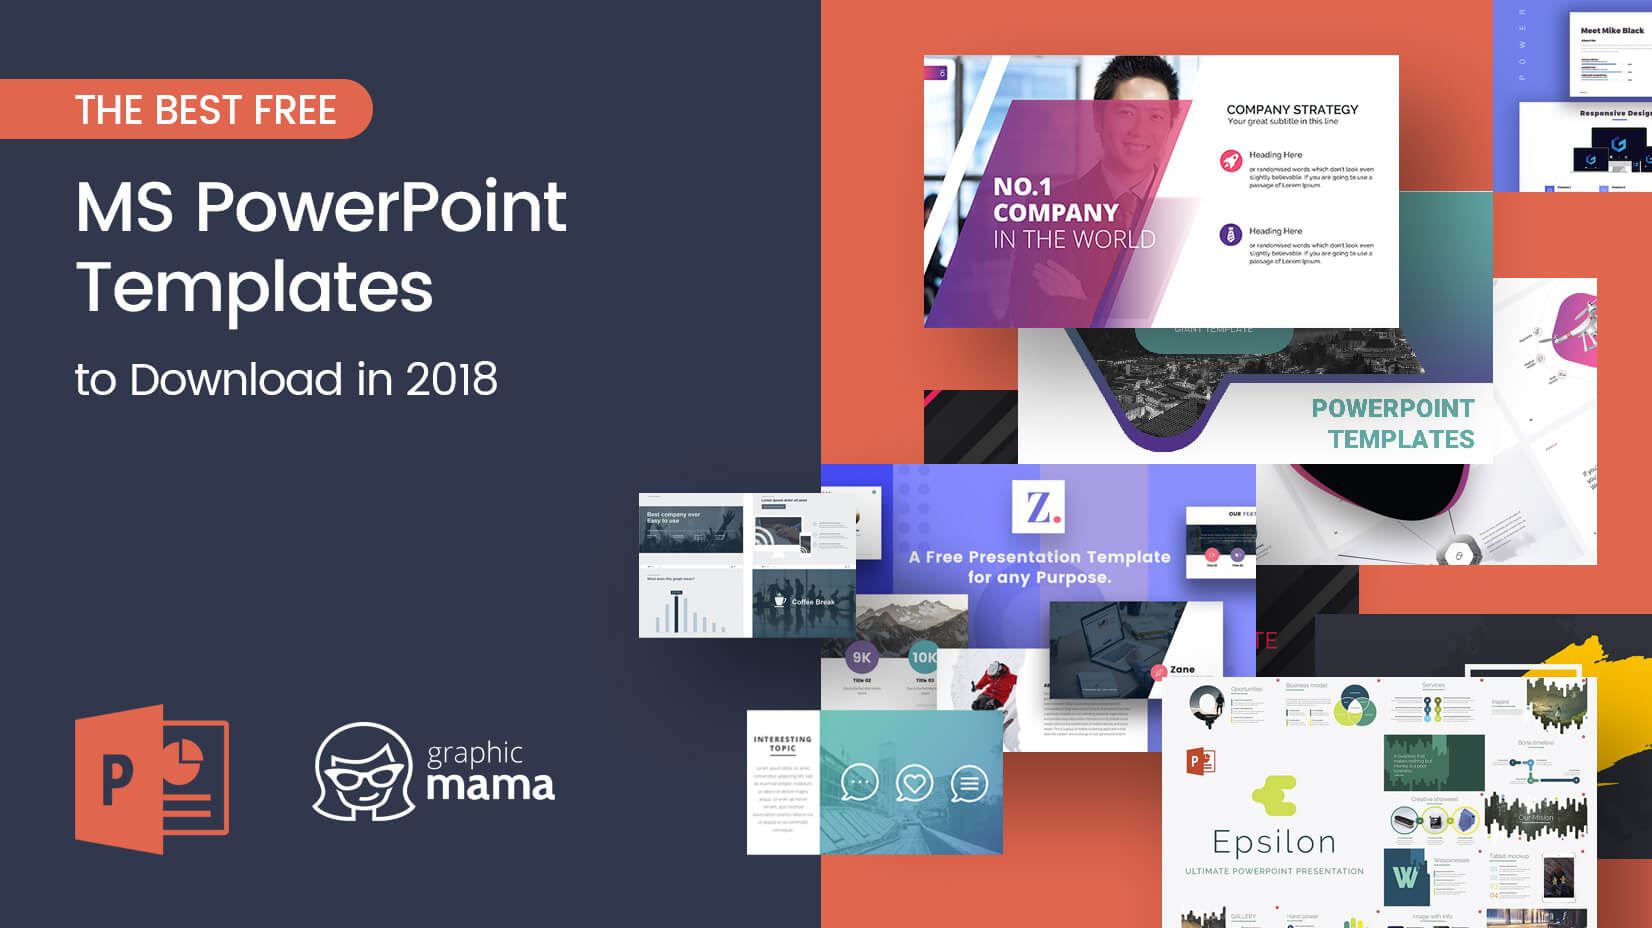 the best free powerpoint templates to download in 2018 | graphicmama